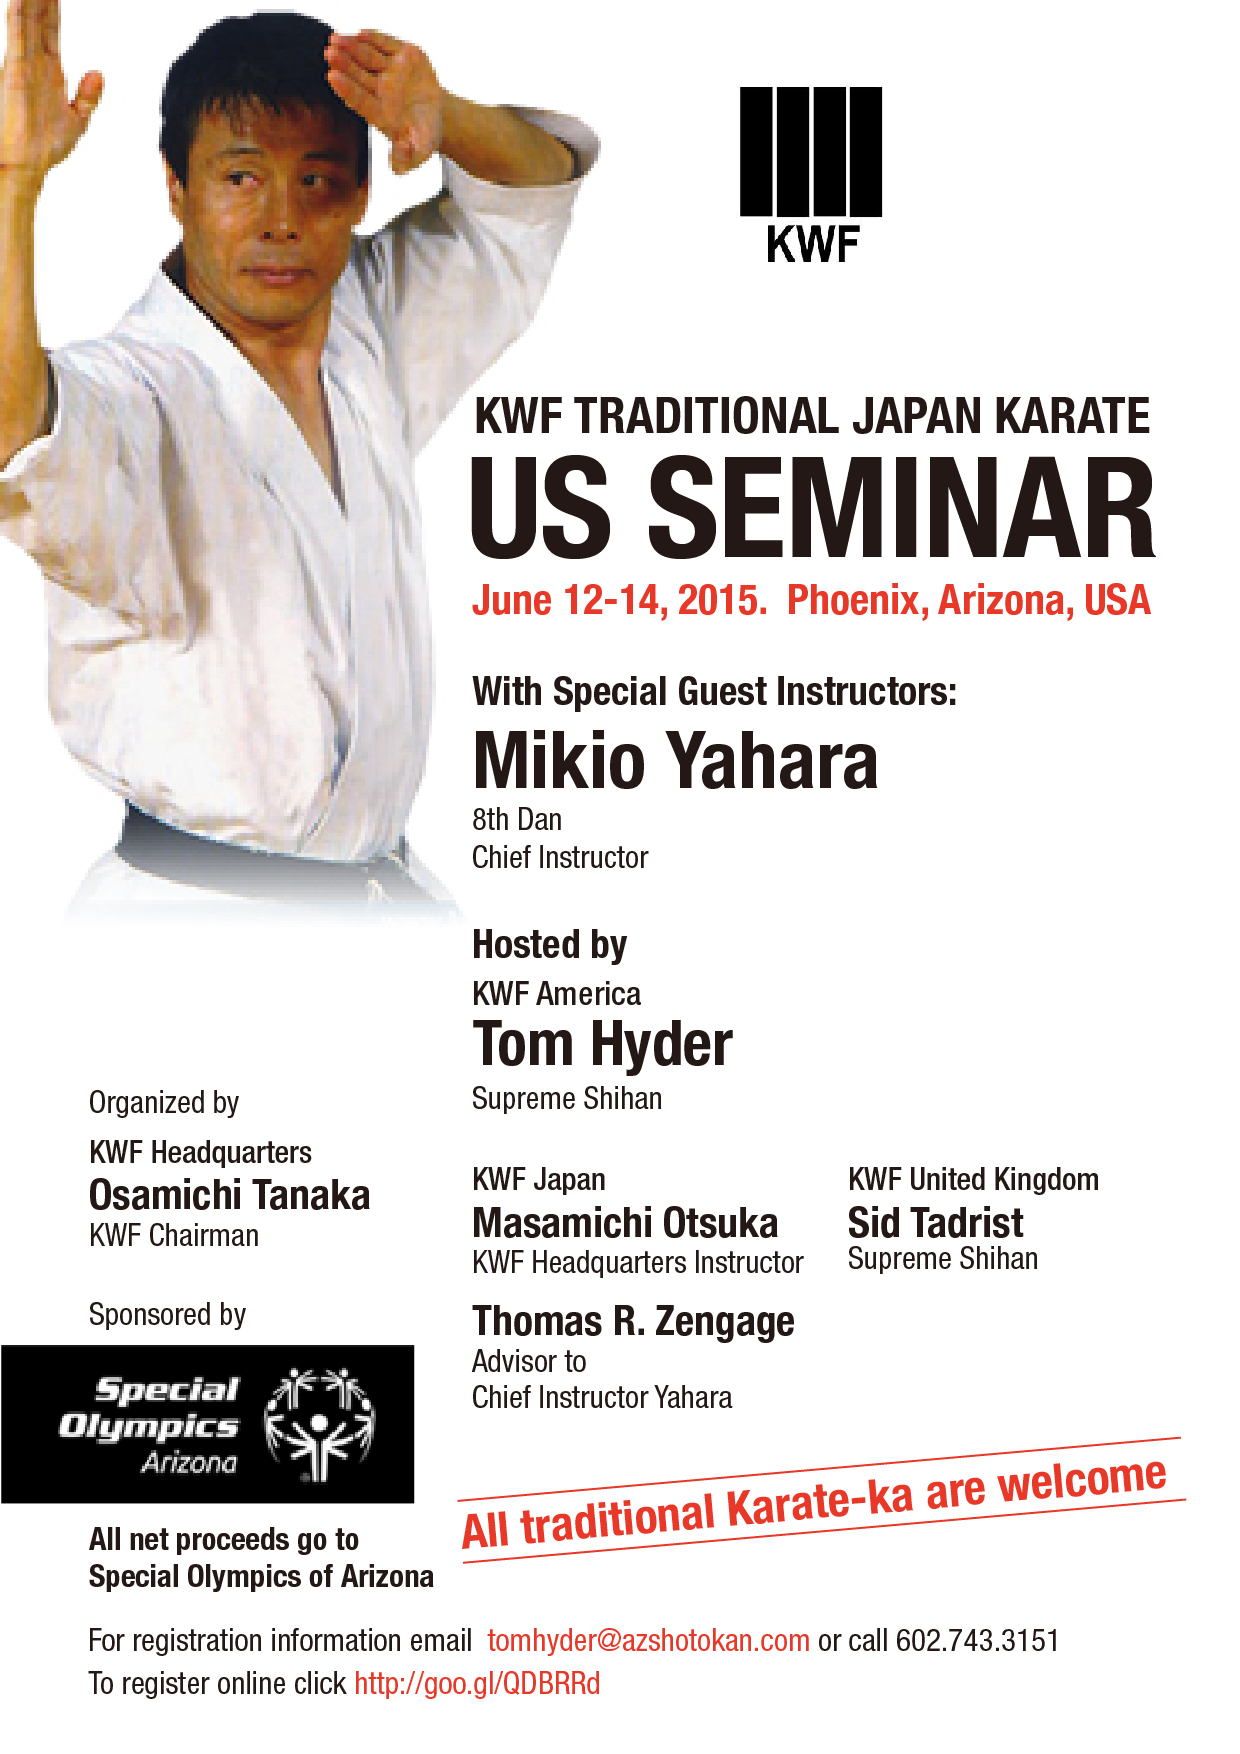 KWF Traditional Japanese Karate: First US Seminar